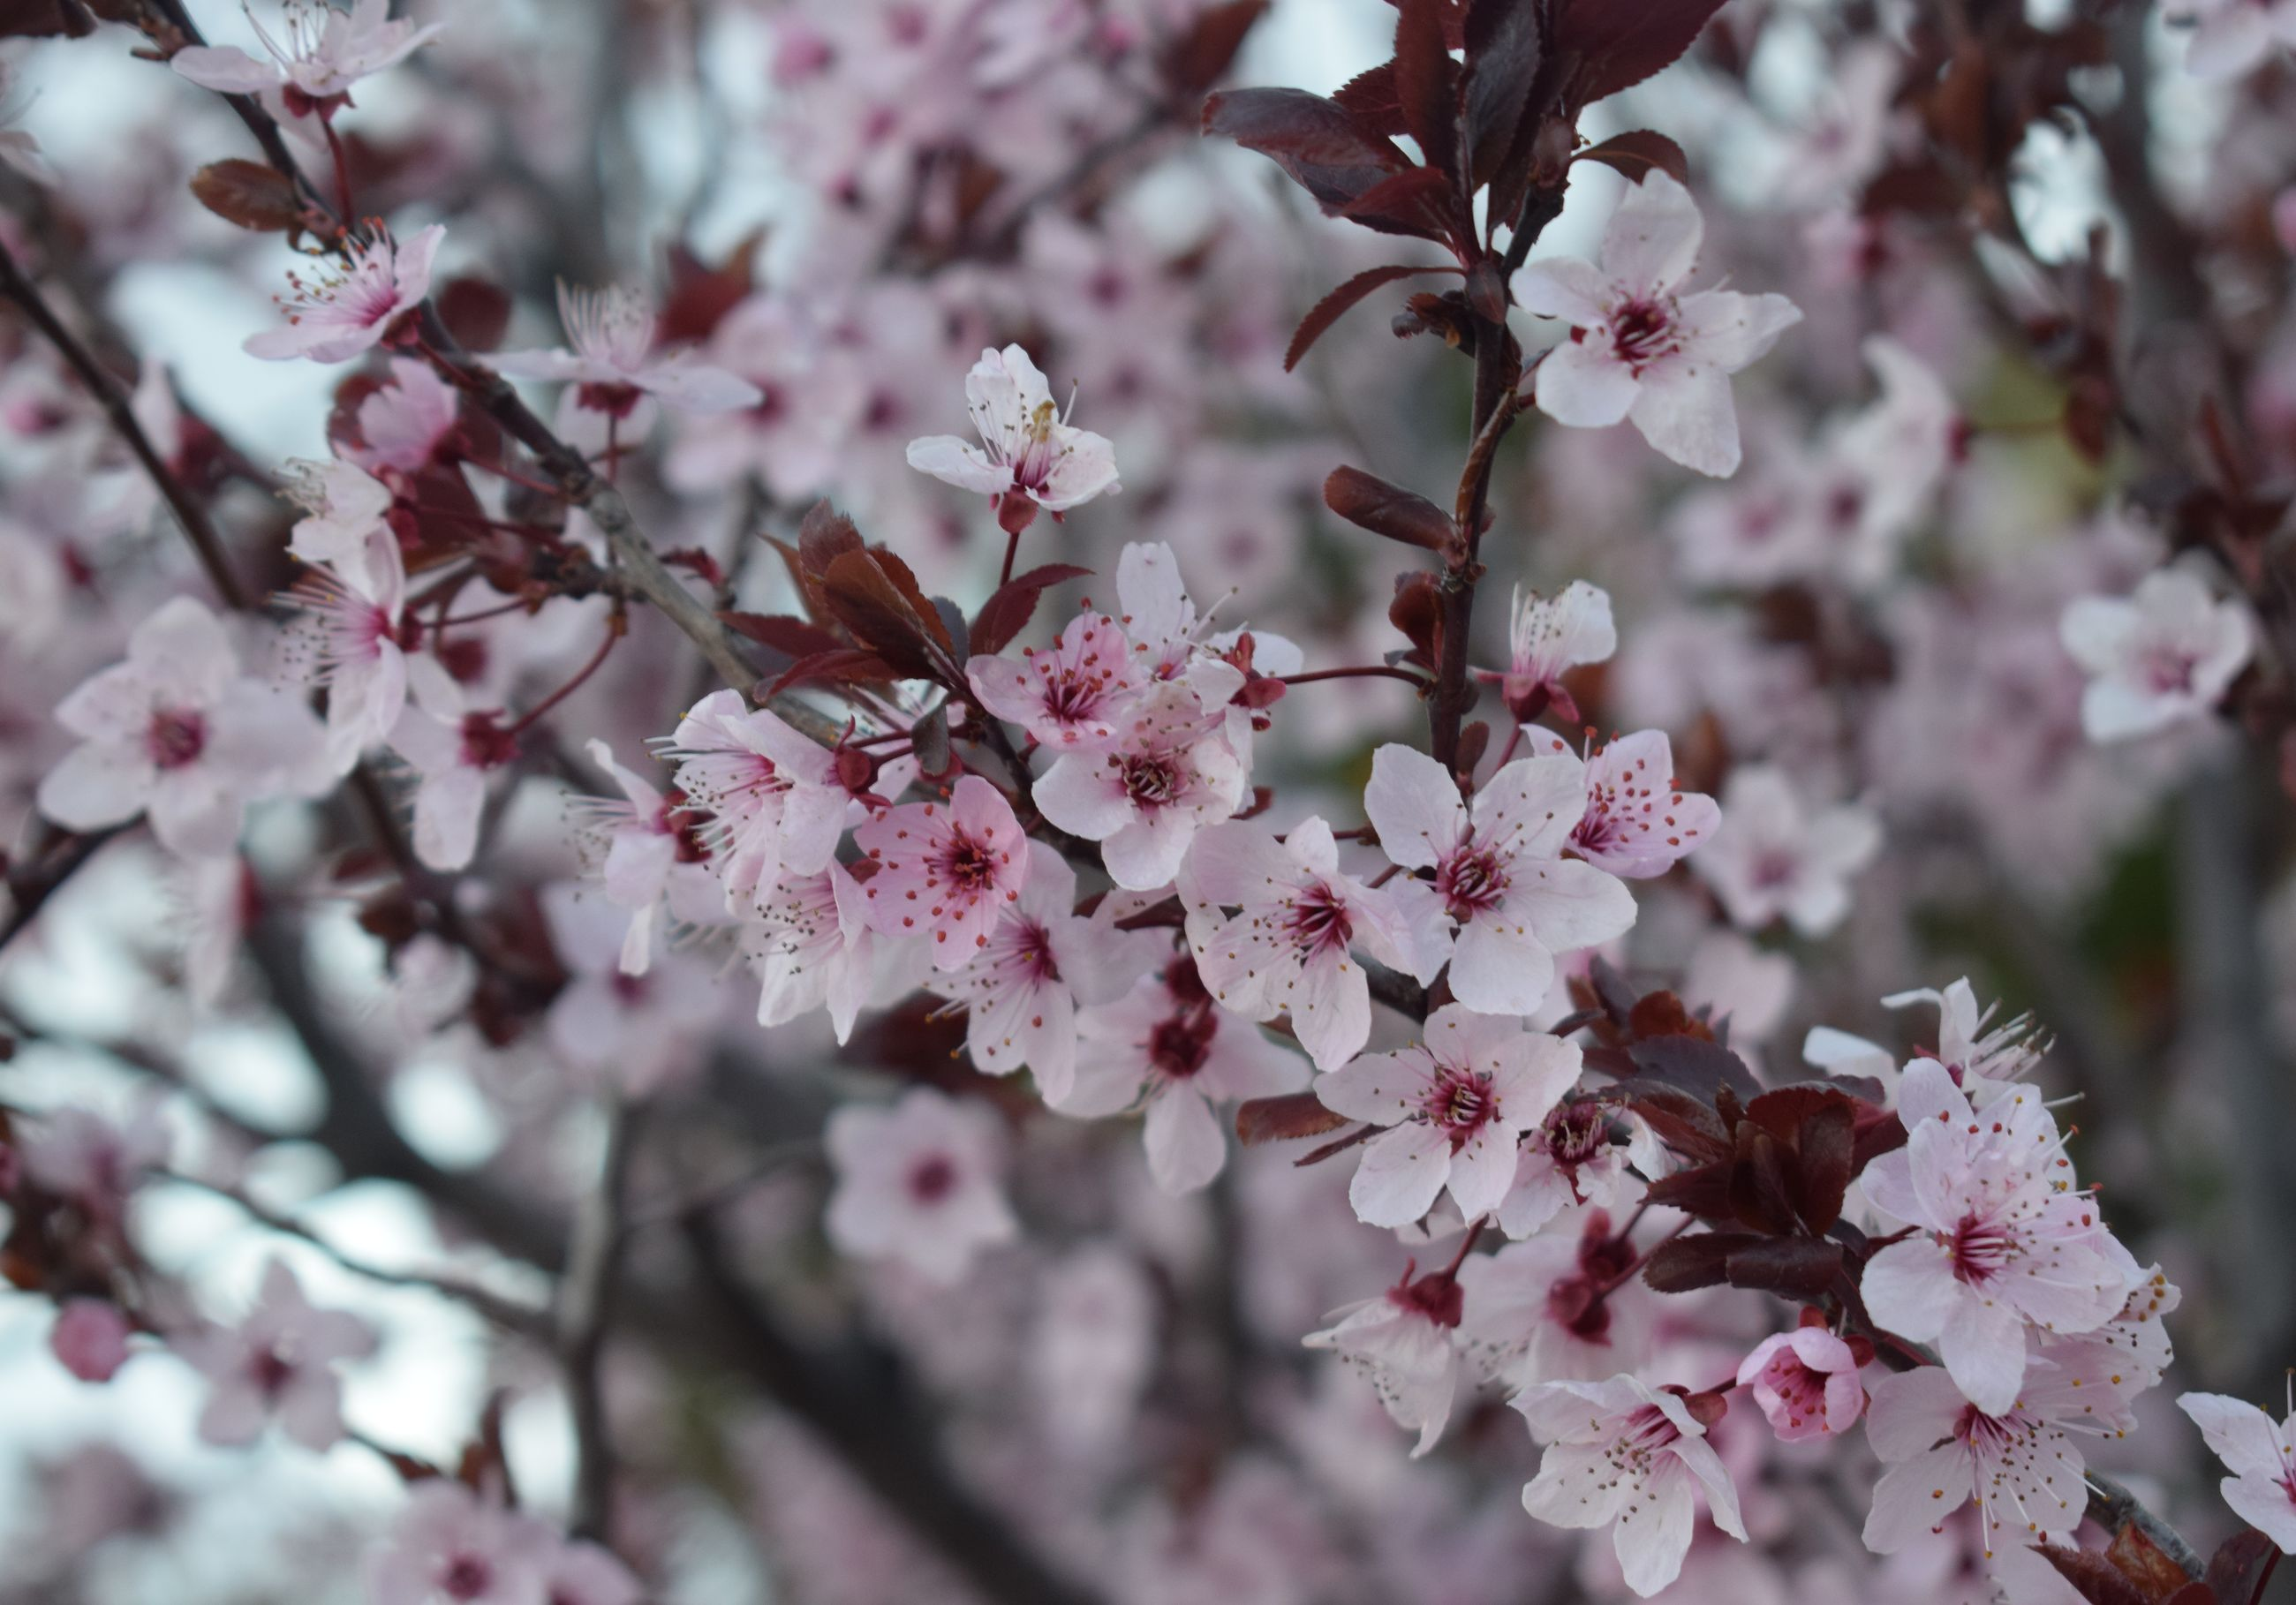 flowering plant, flower, freshness, plant, fragility, vulnerability, growth, beauty in nature, springtime, blossom, tree, close-up, pink color, nature, branch, petal, day, no people, cherry blossom, selective focus, flower head, outdoors, cherry tree, spring, bunch of flowers